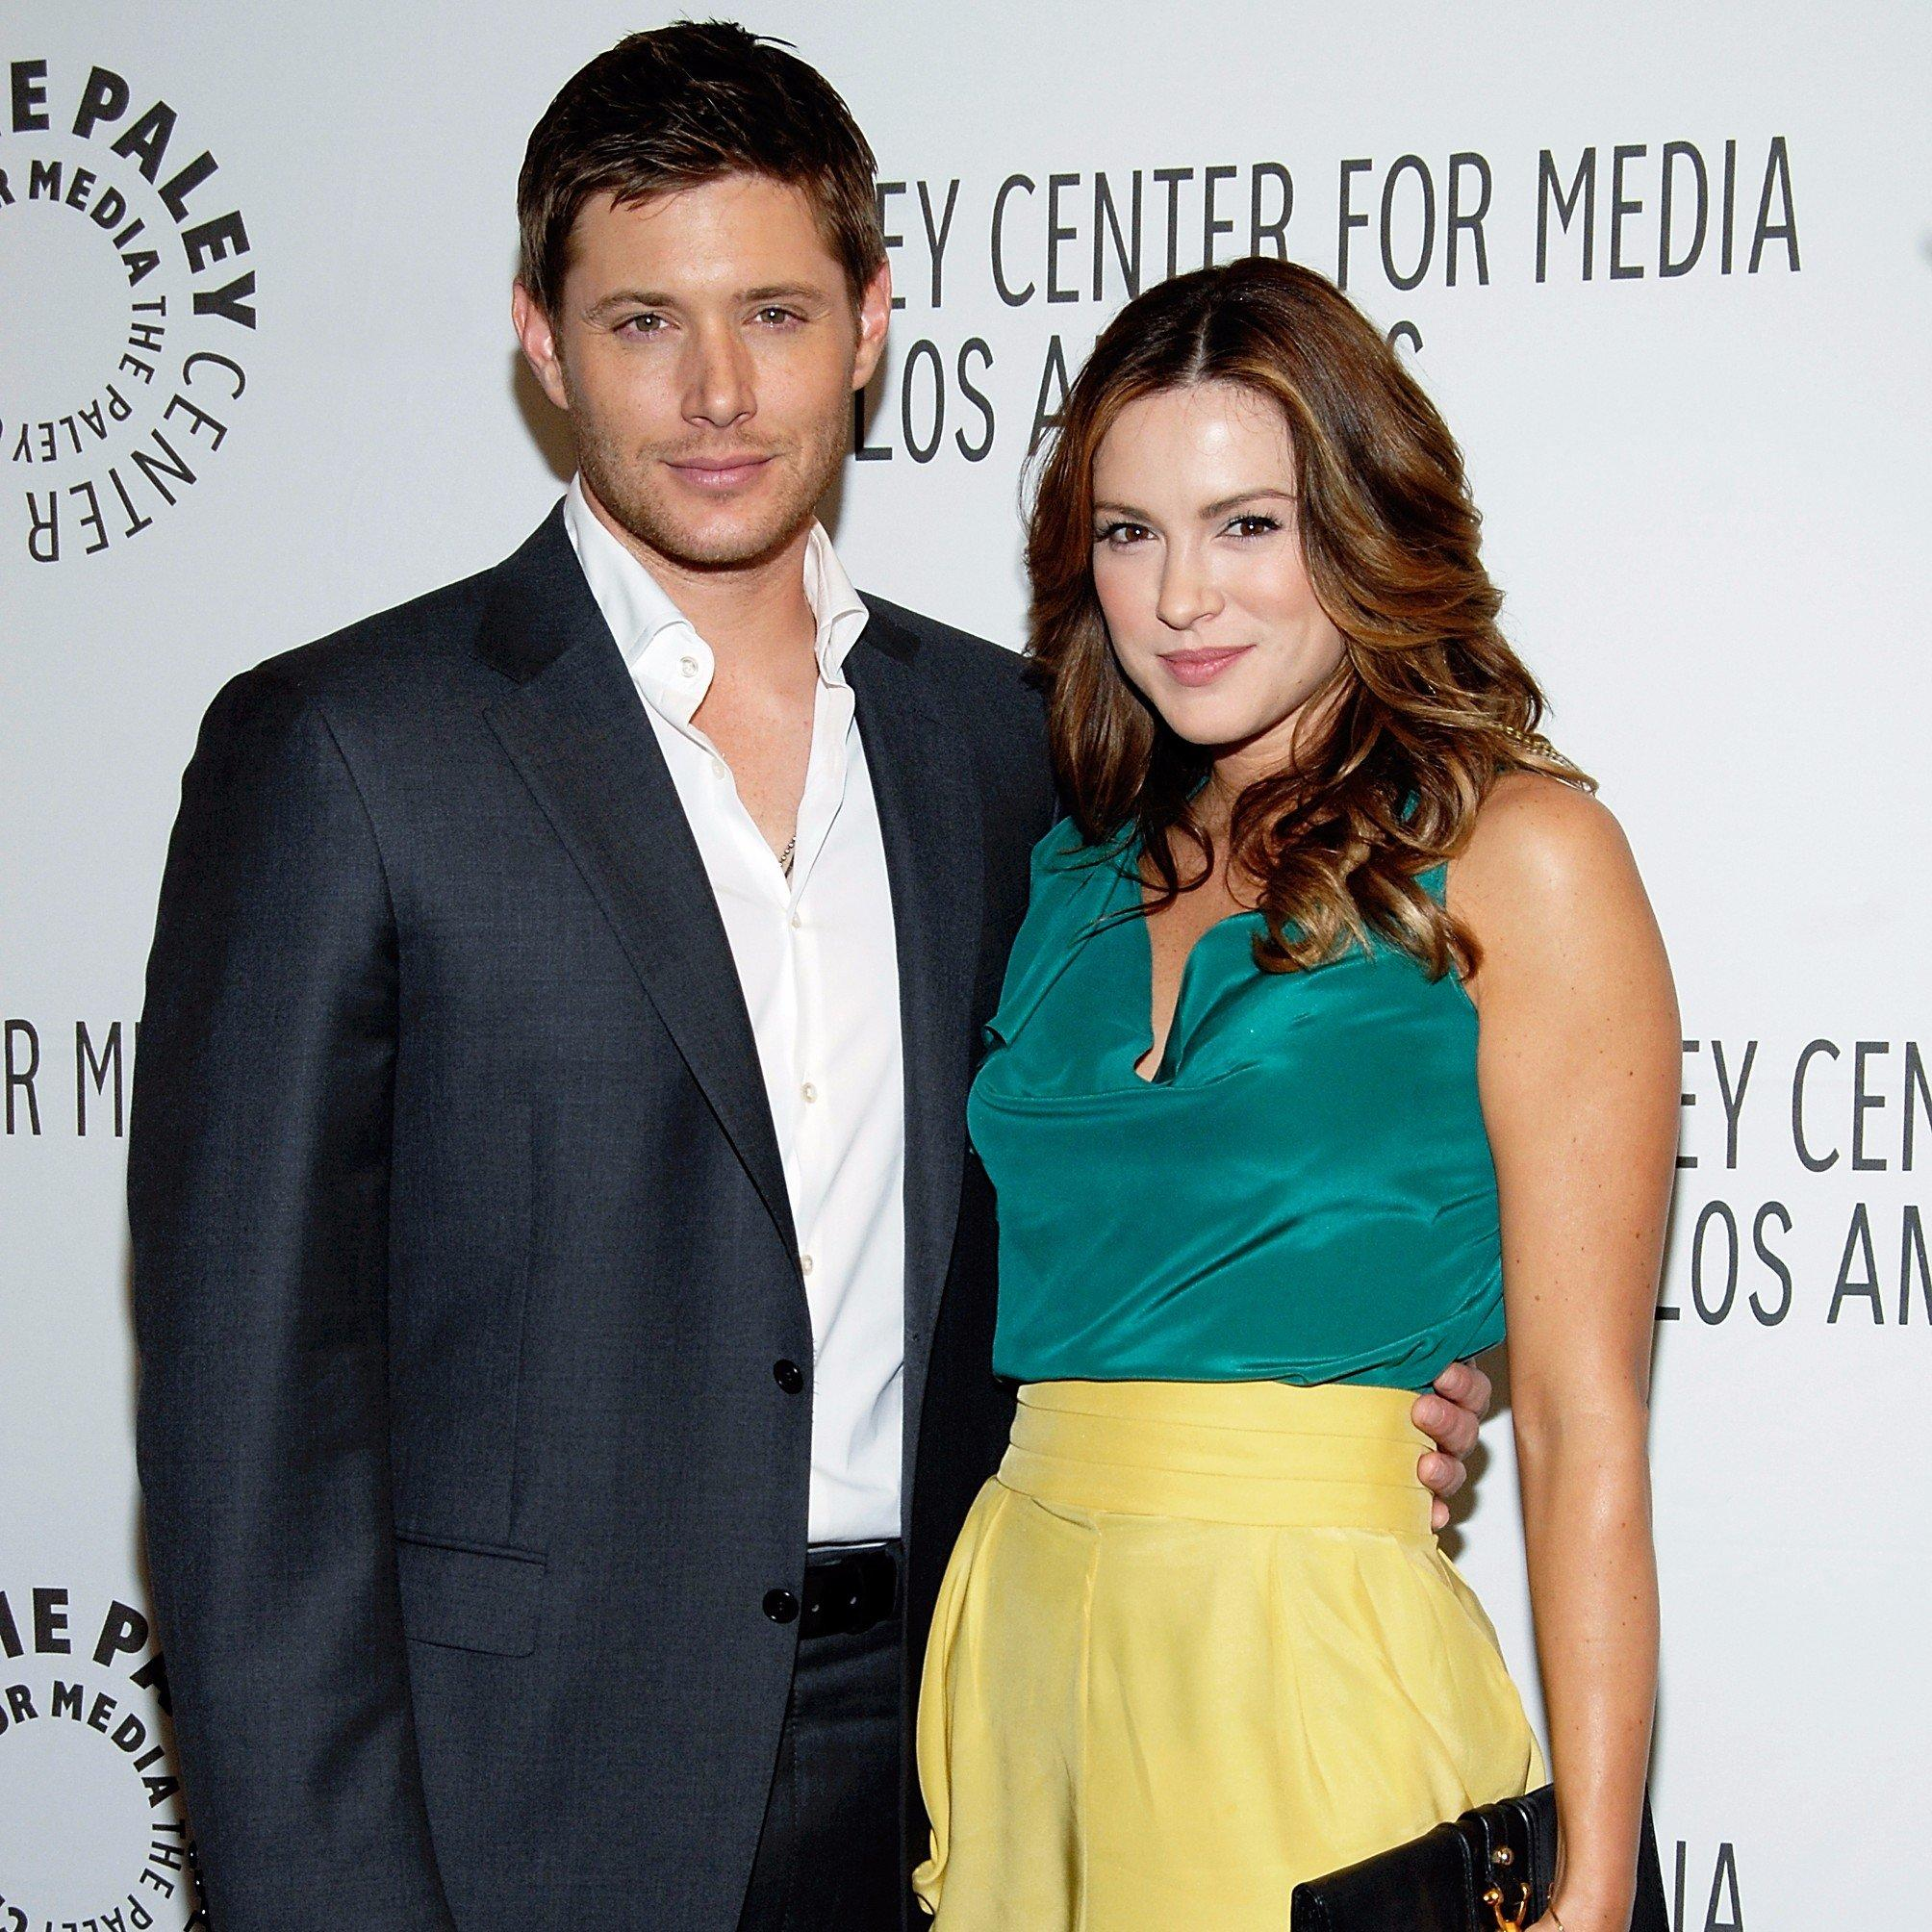 Jensen Ross Ackles born March 1 1978 is an American actor and director He has appeared on television as Dean Winchester in The CW horror fantasy series